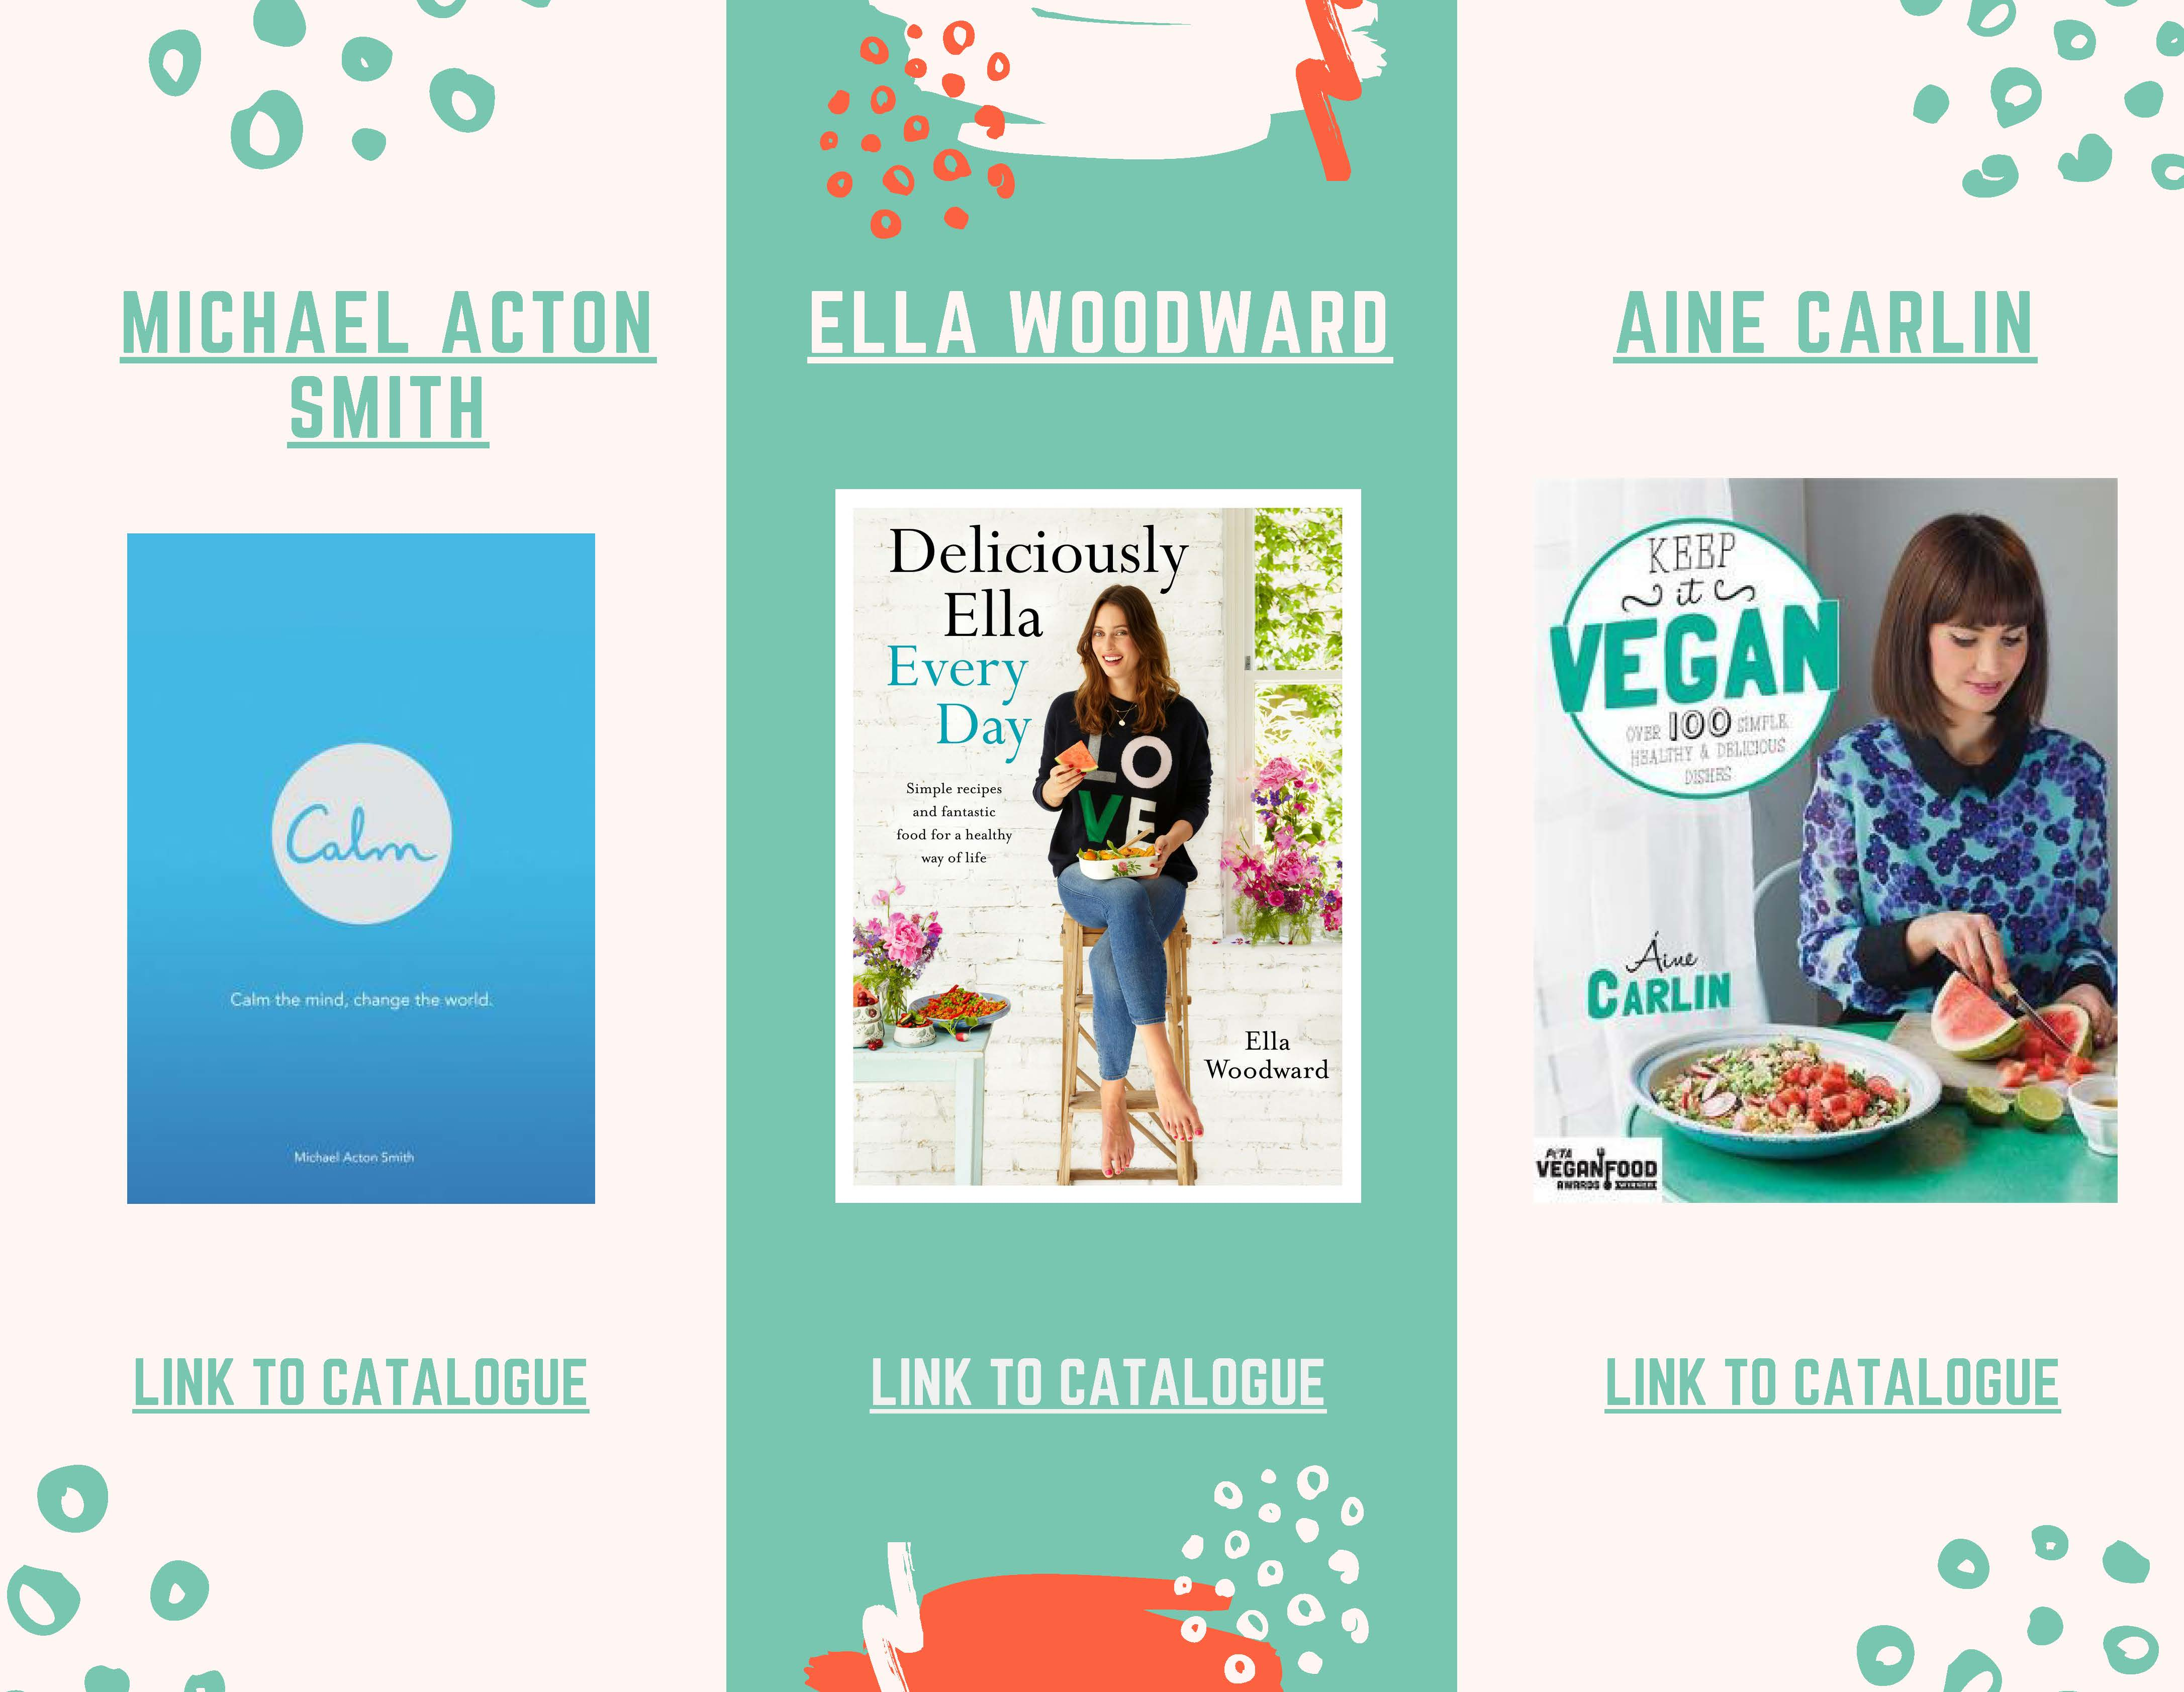 Michael Acton,Ella Woodward and Aime Carlin book covers